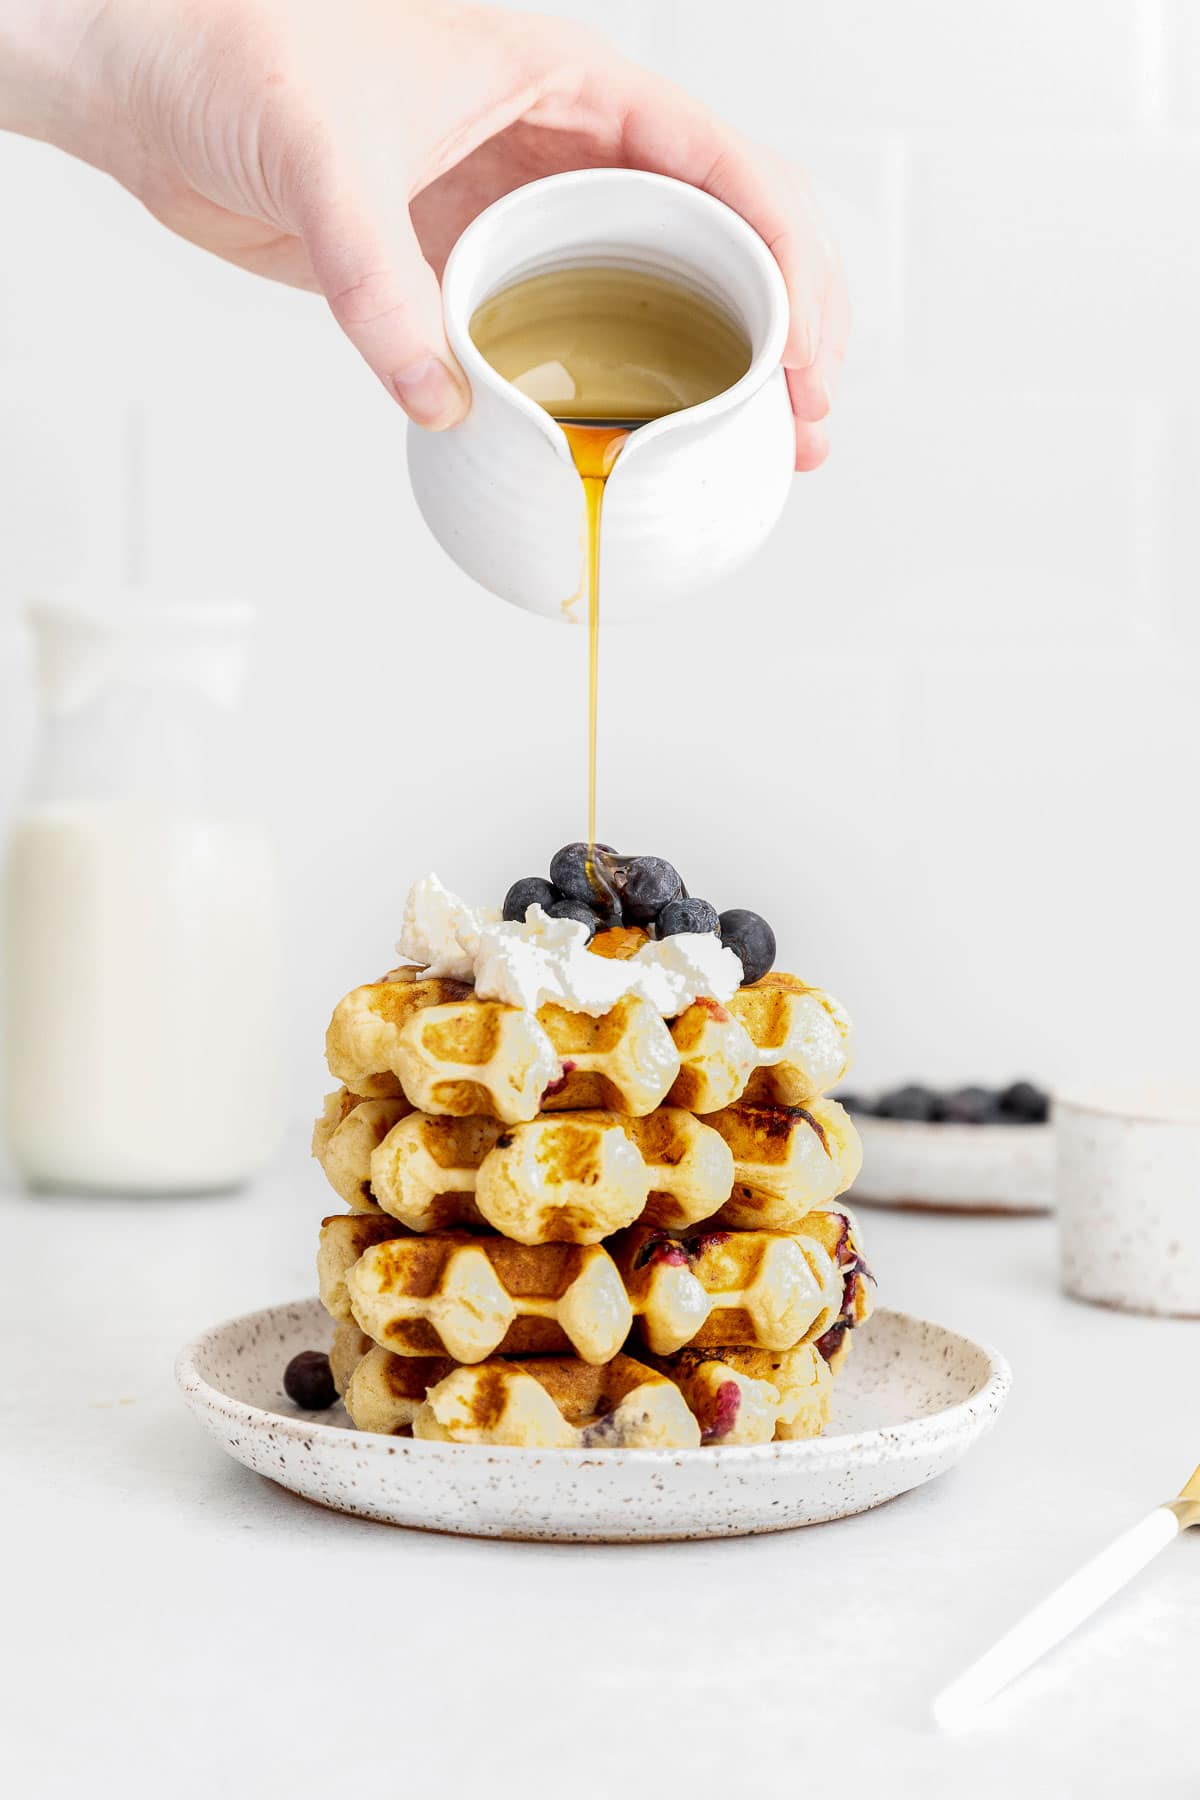 maple syrup being poured over a stack of blueberry waffles